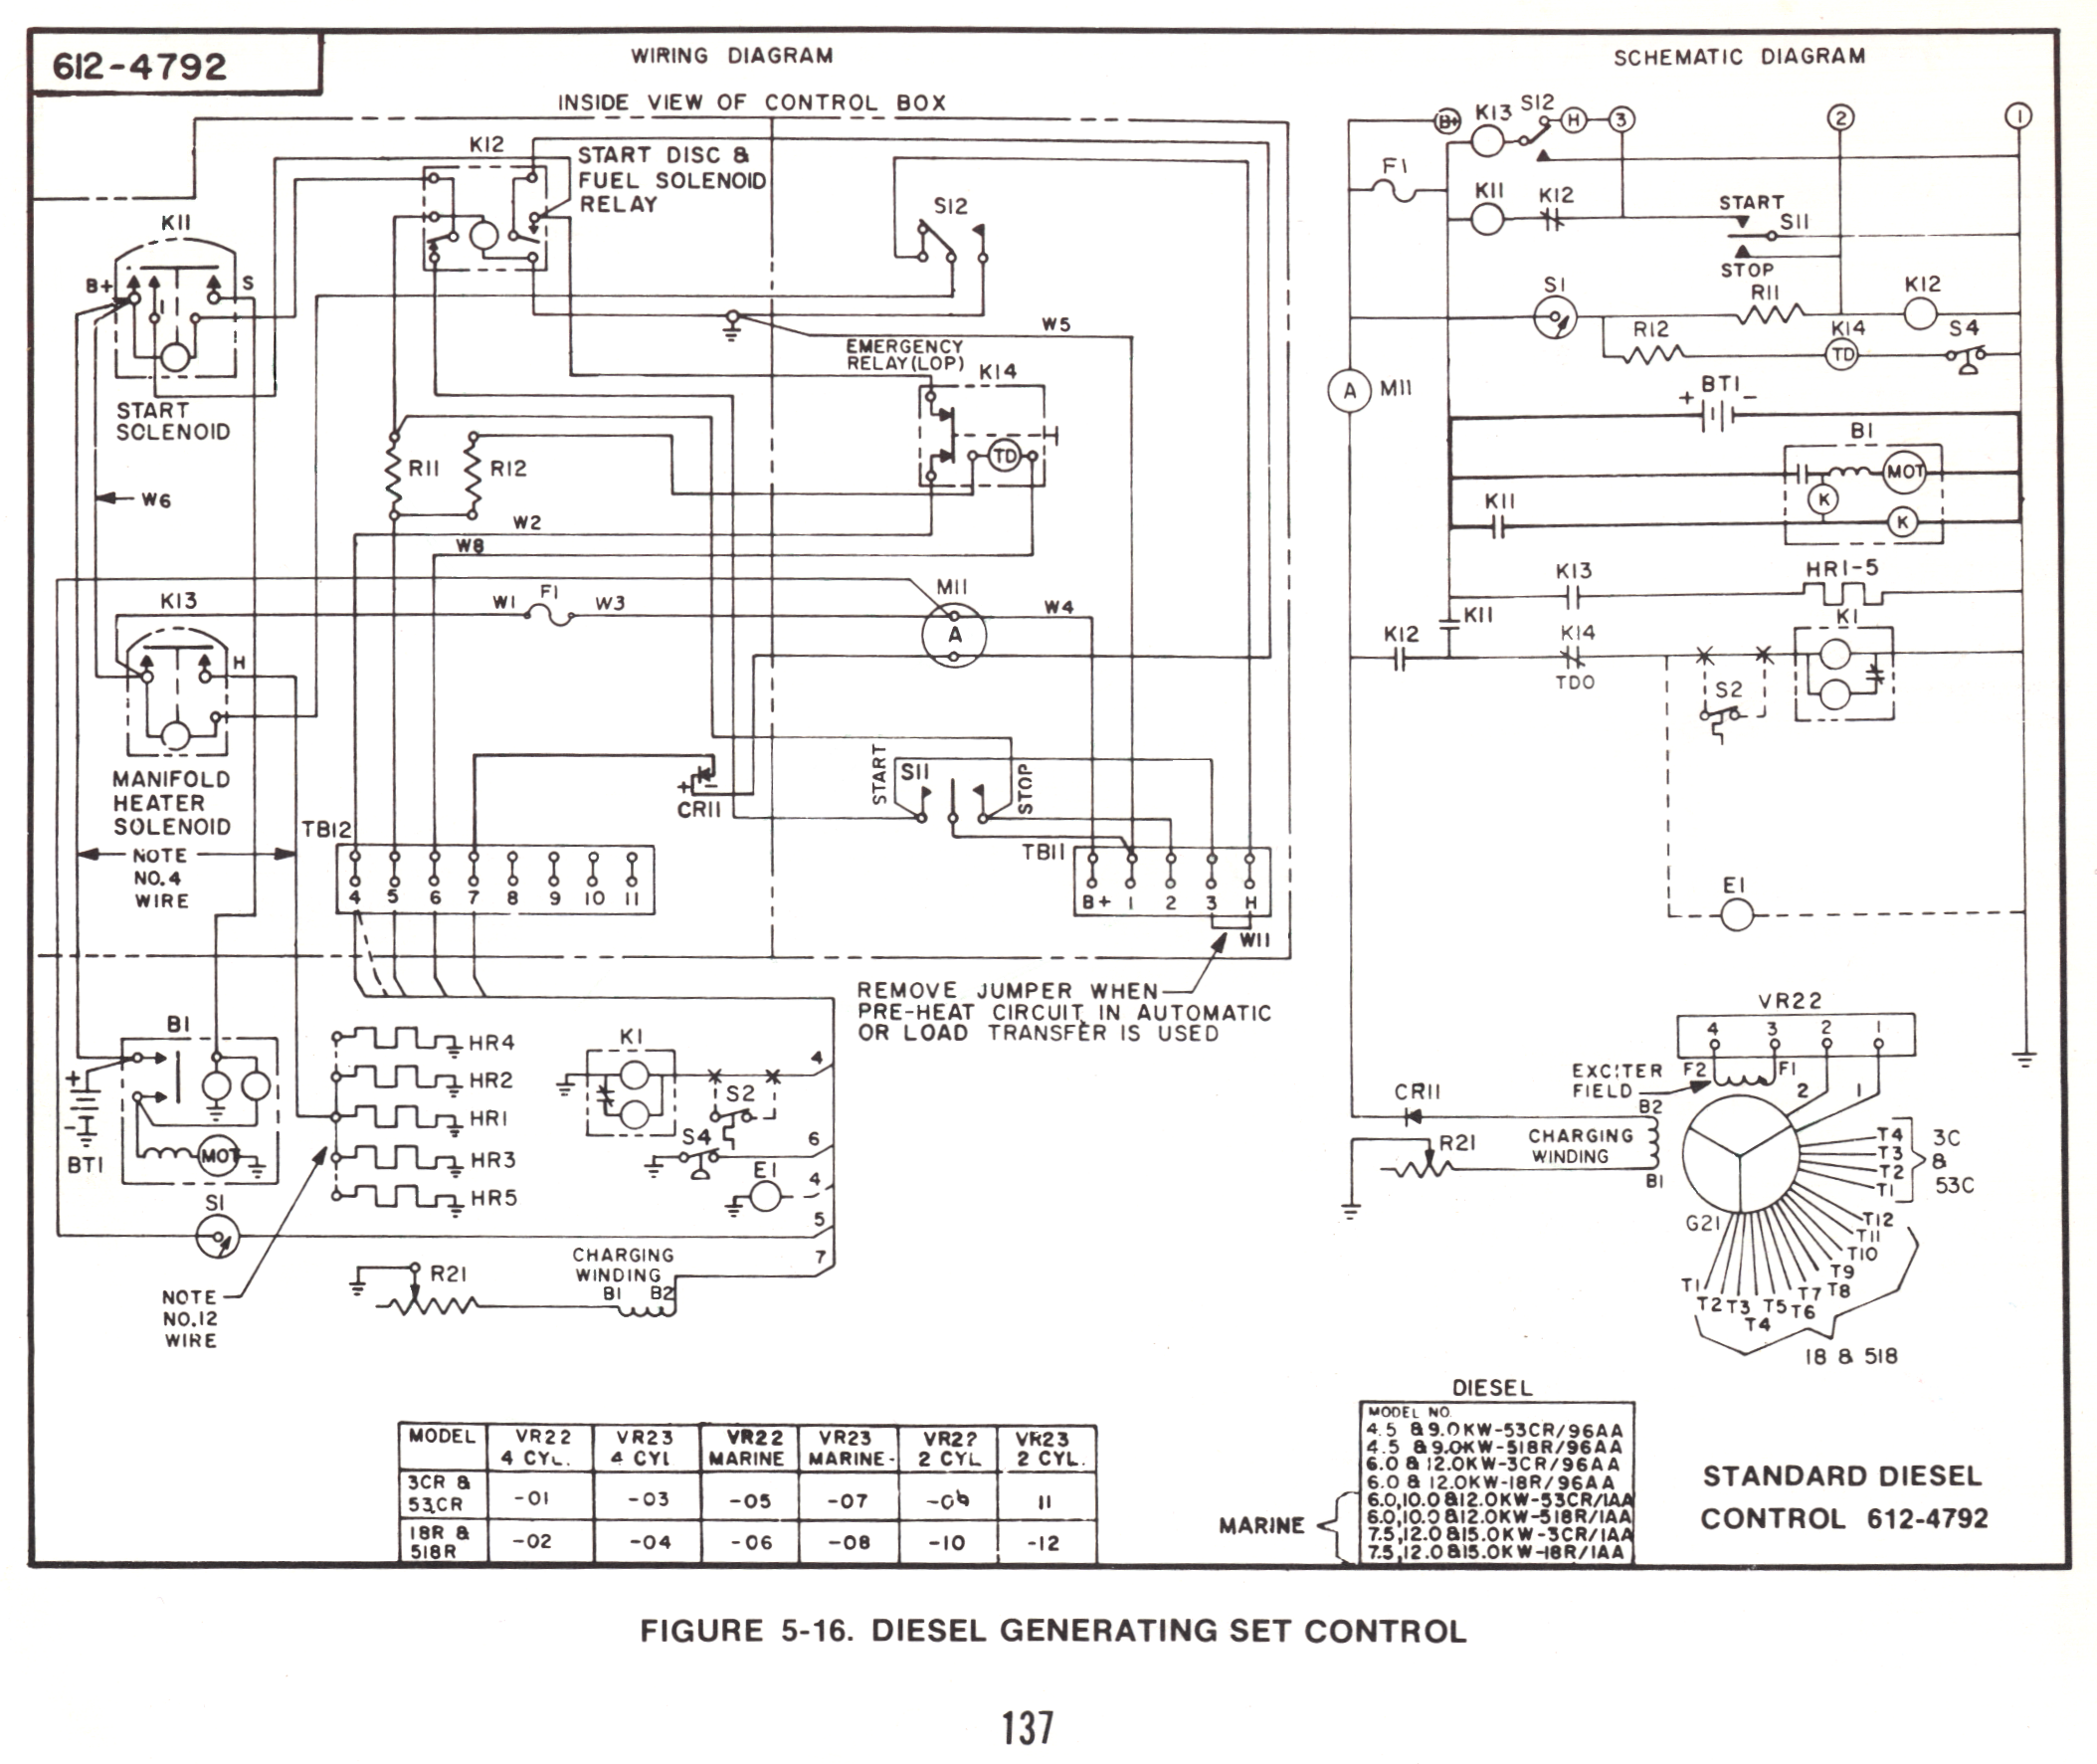 Onan_Diesel_Controls_612 4792_b onan 6 5 nh wiring diagram onan engine wiring diagram sensors onan generator remote start wiring diagram at mifinder.co